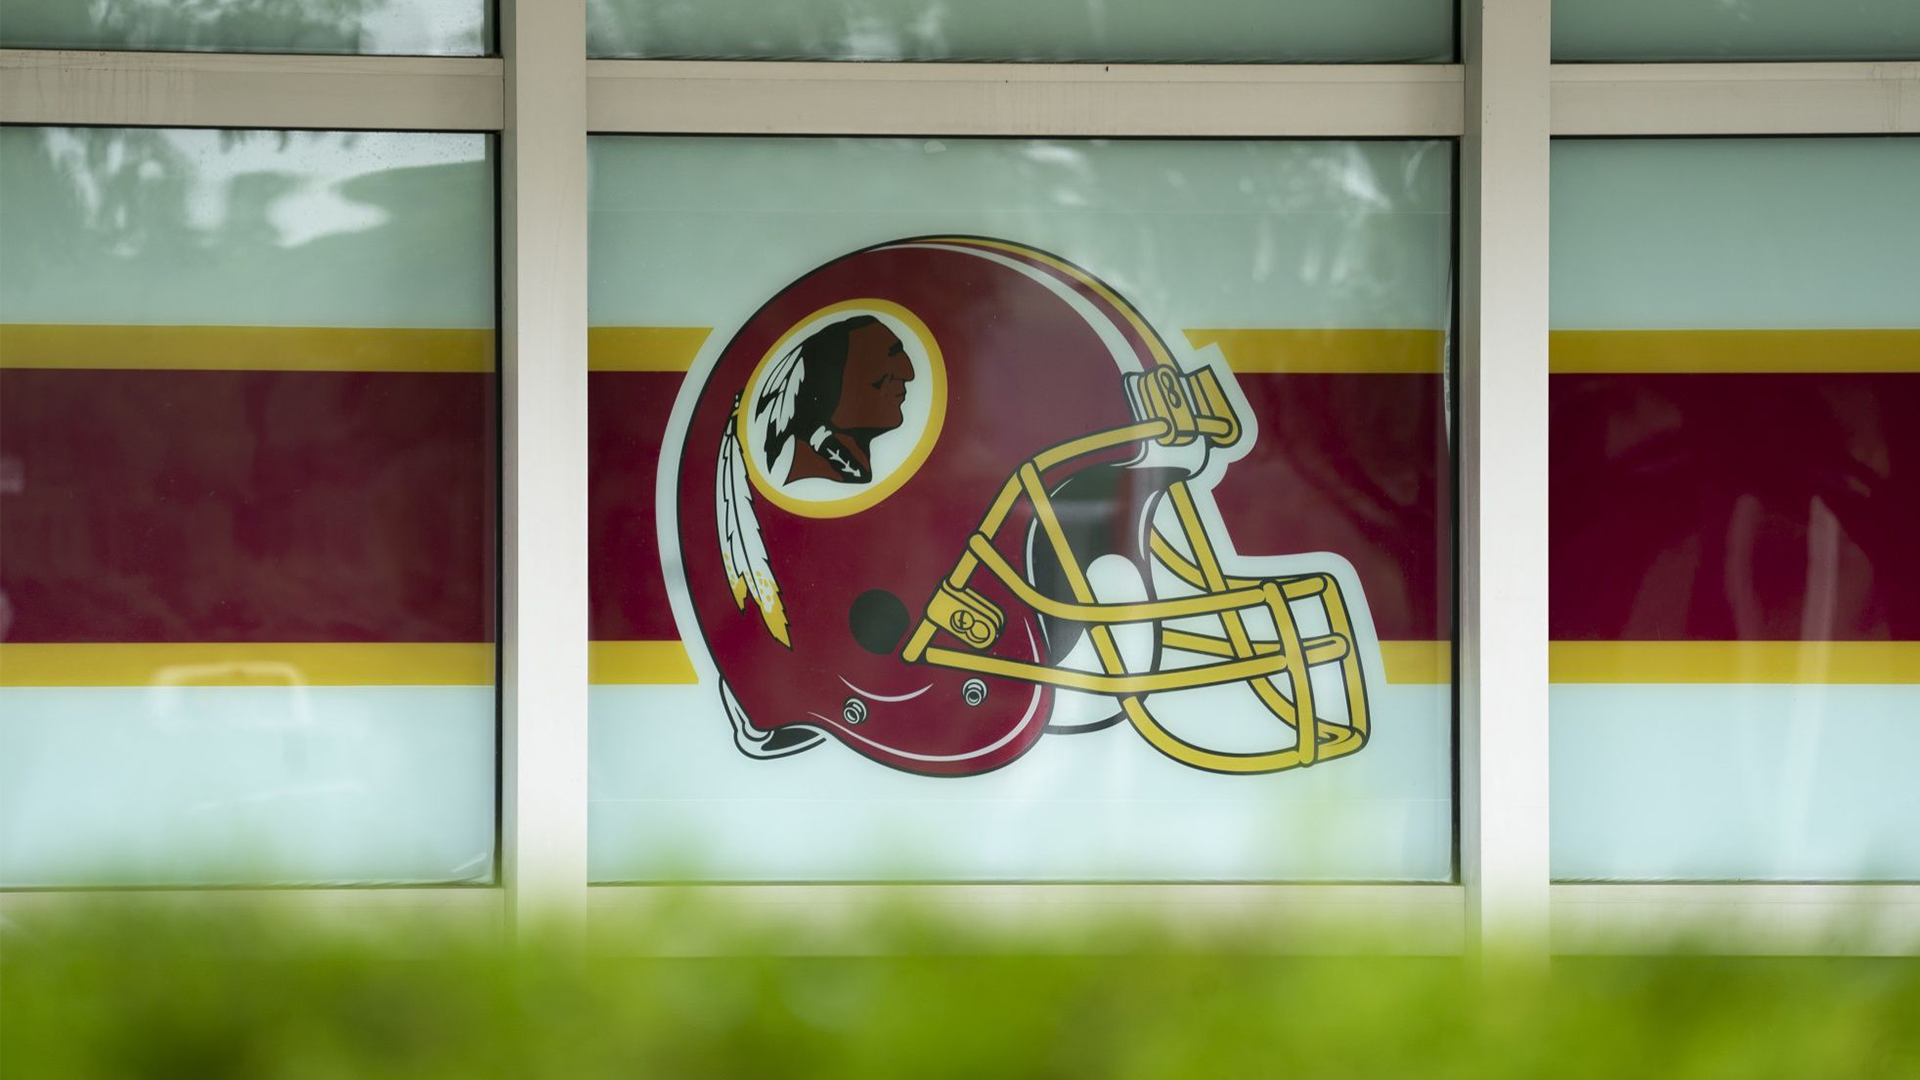 The Redskins will retire name after decades of controversy